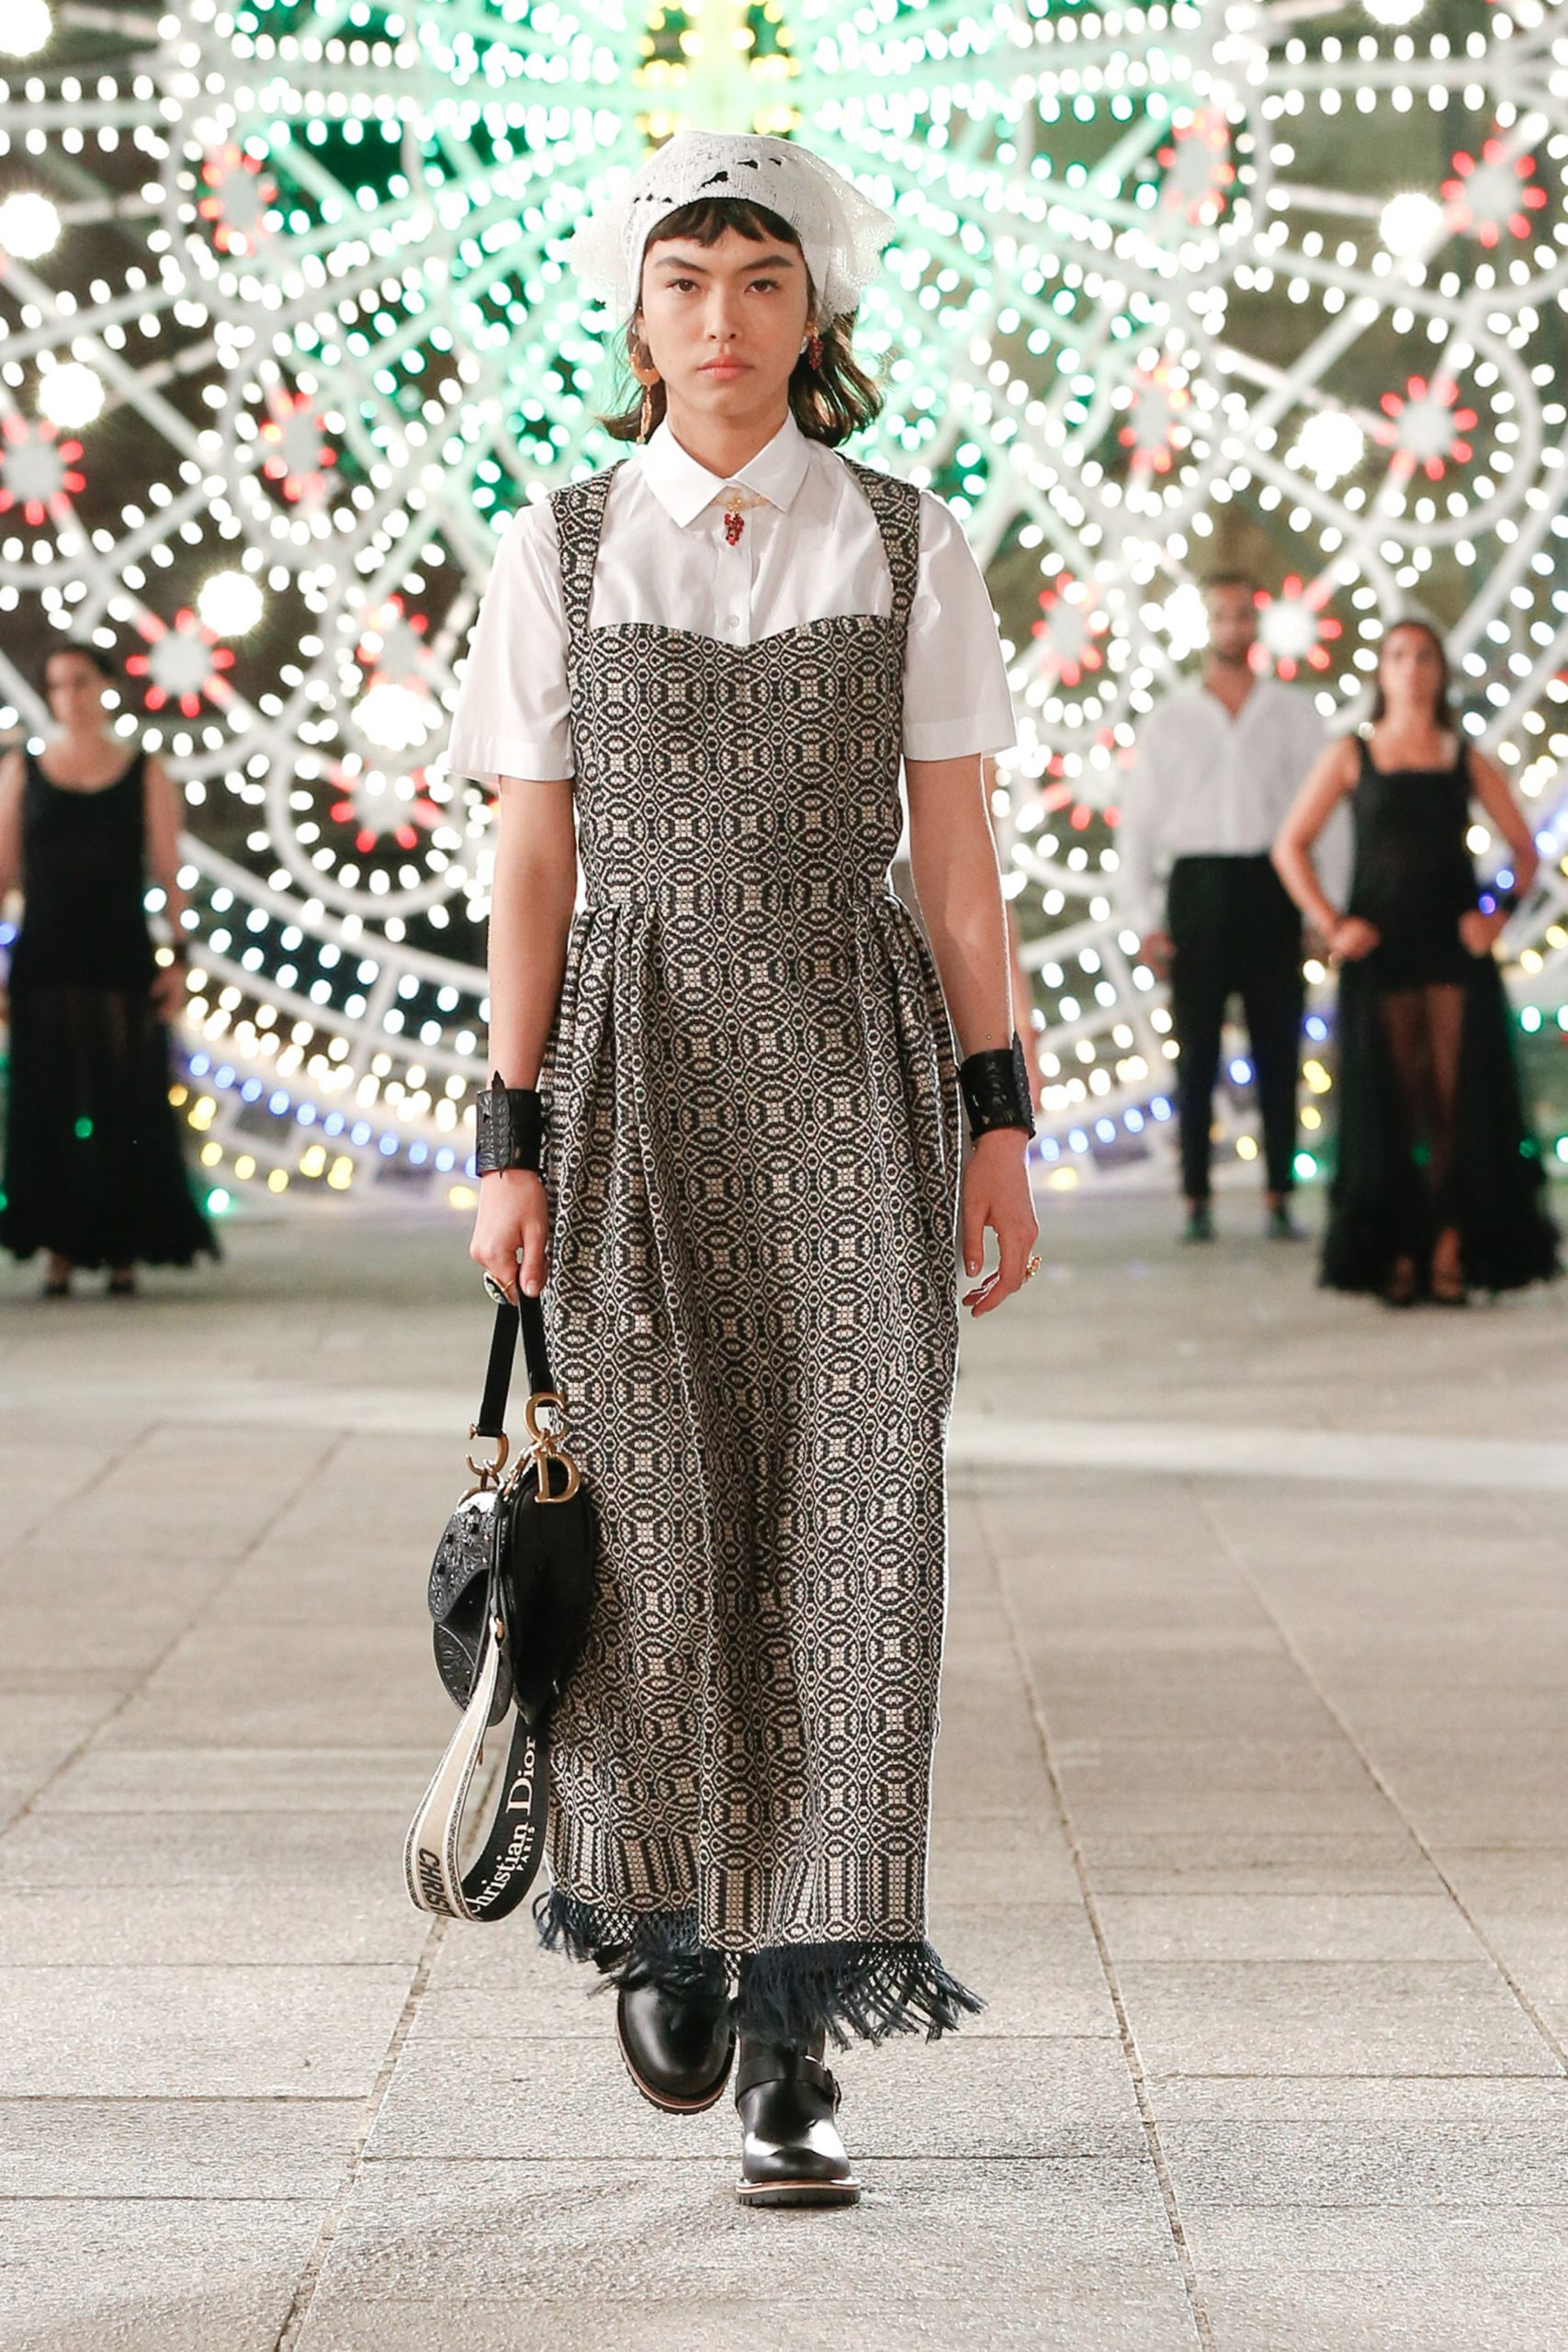 Dior Resort Cruise 2021 Fashion Show Review and Photos